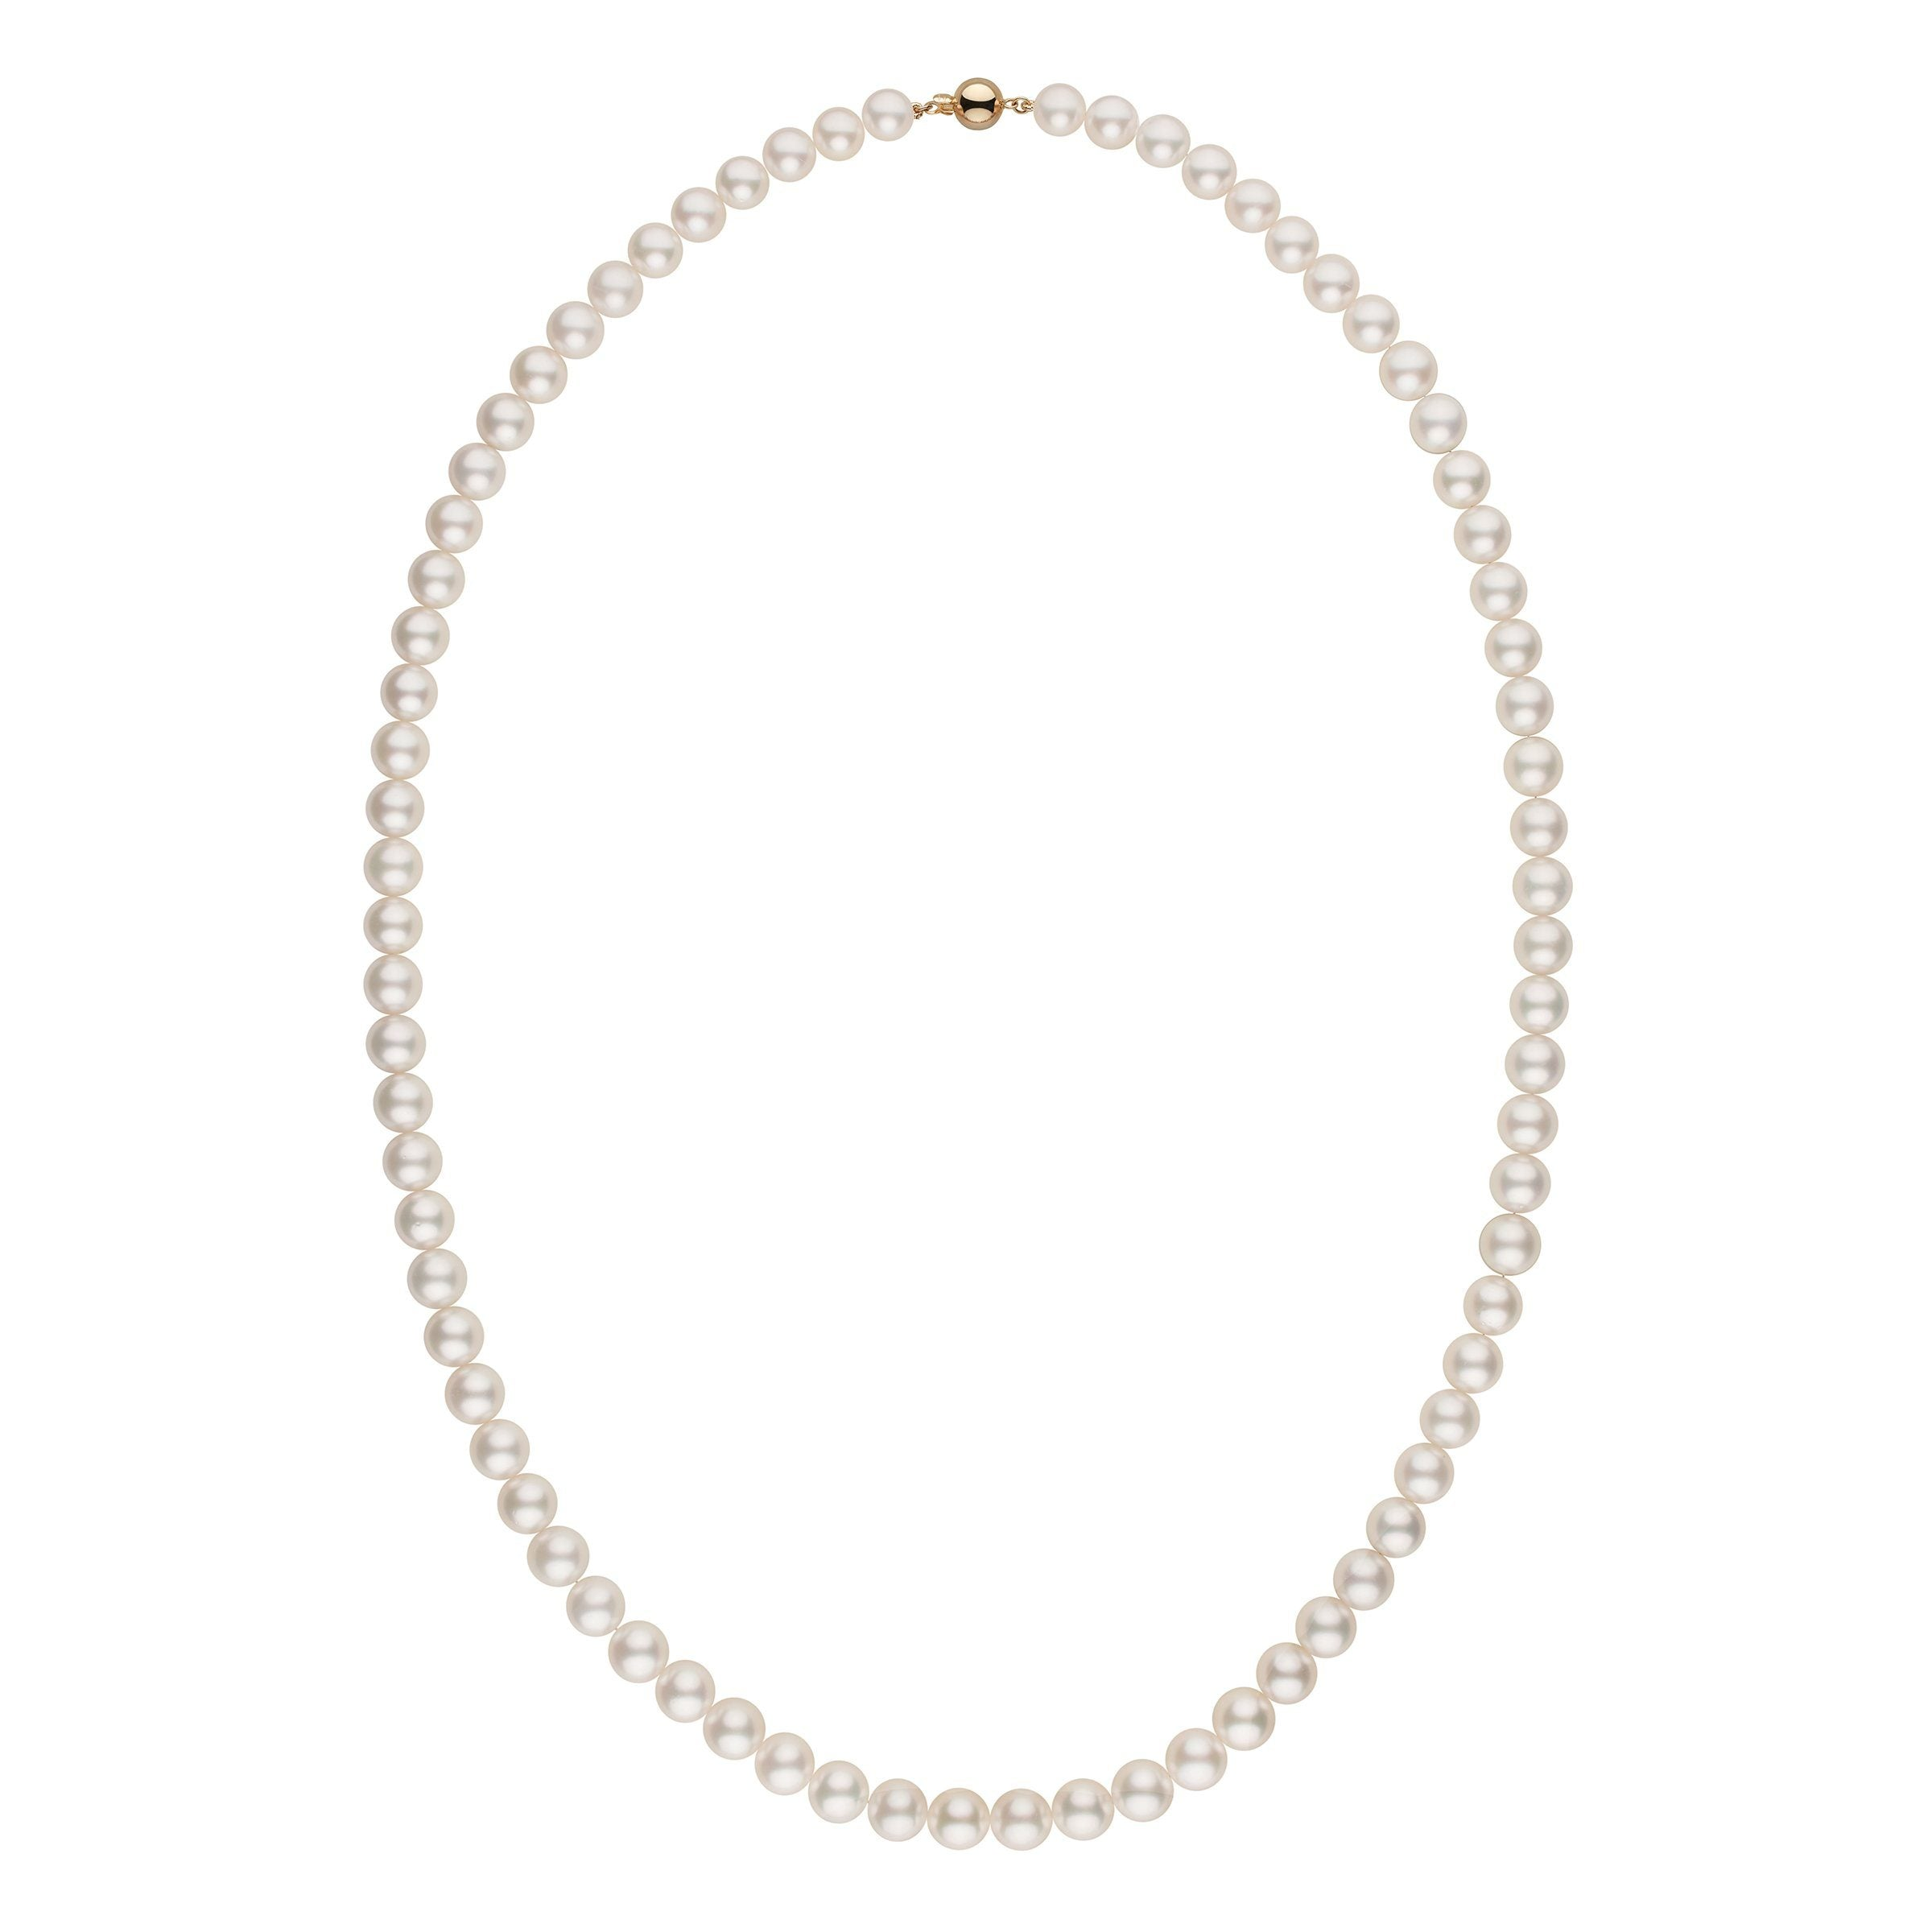 10.0-11.5 mm AA+/AAA White South Sea Round Pearl Necklace - 35 Inches